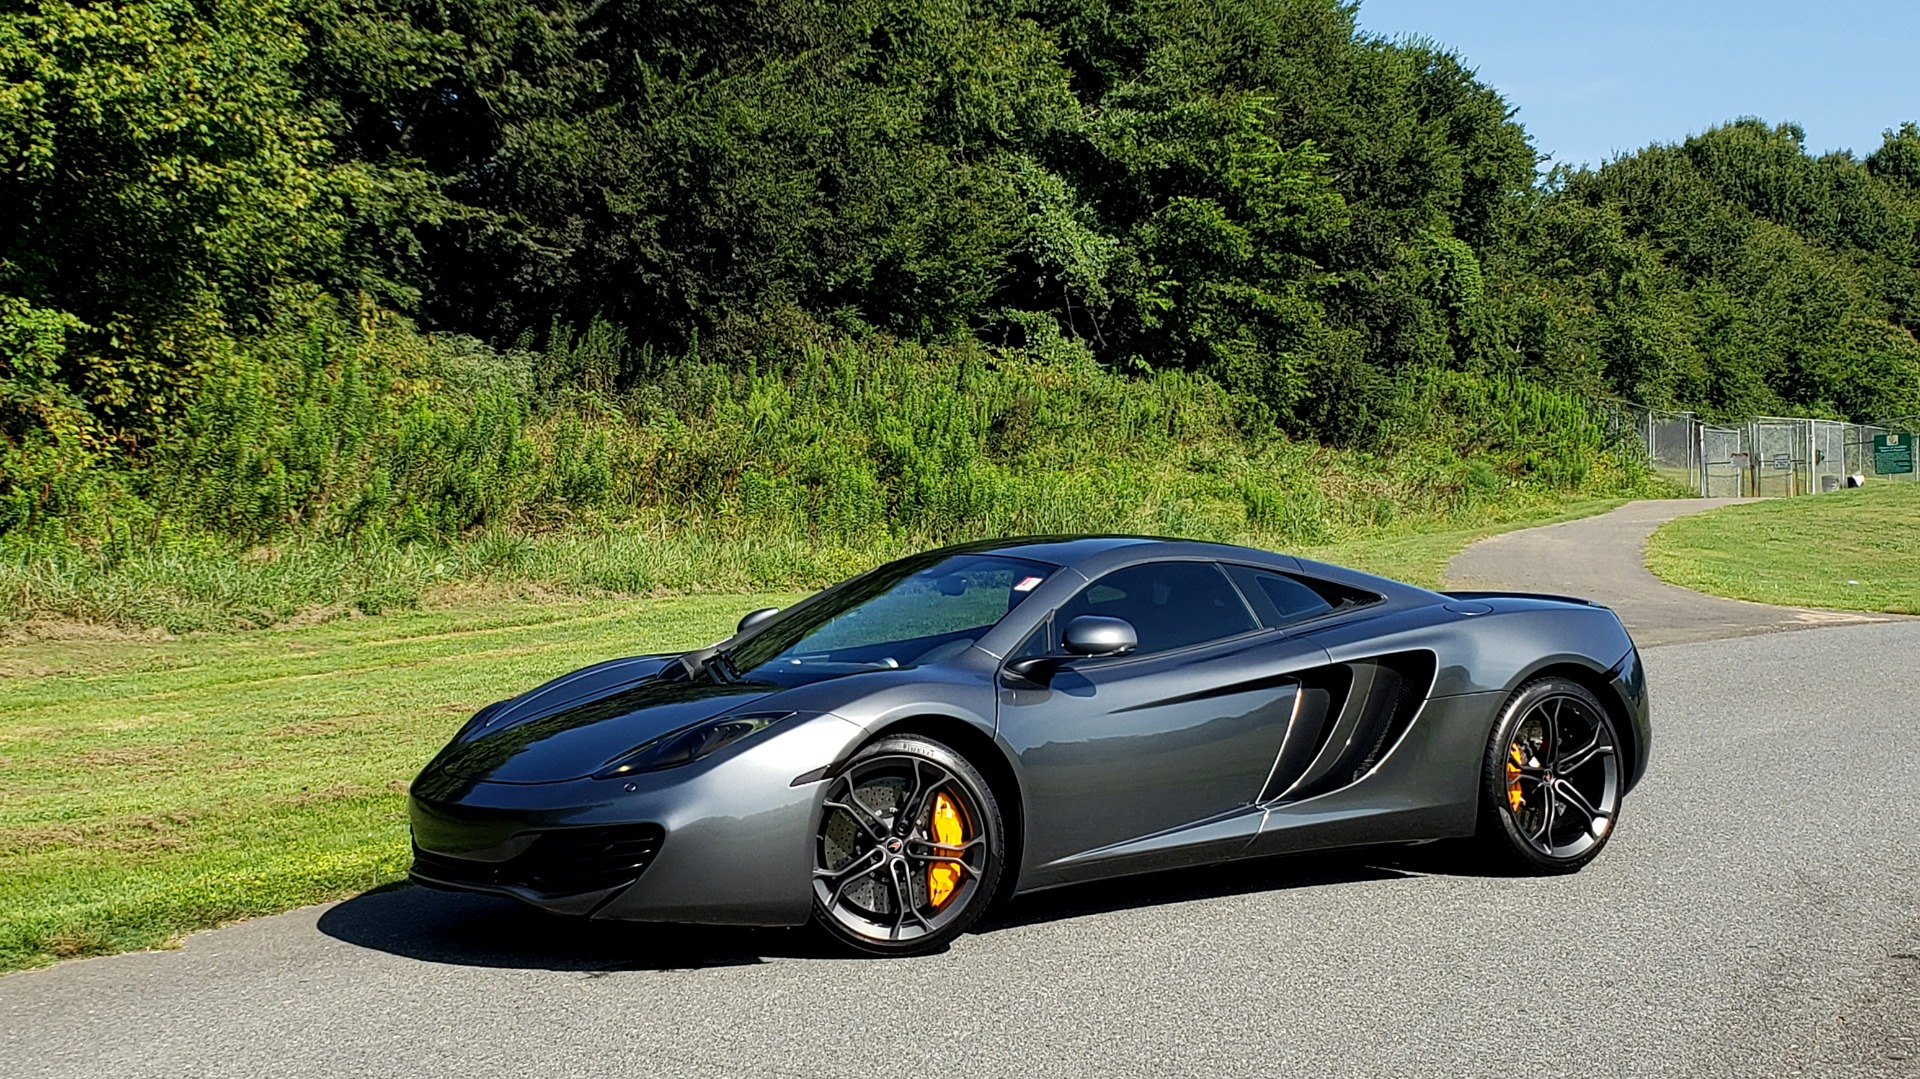 Used 2012 McLaren MP4-12C COUPE / 3.8 L V8 592HP / AUTO / NAV / CCB / LOW MILES for sale Sold at Formula Imports in Charlotte NC 28227 7